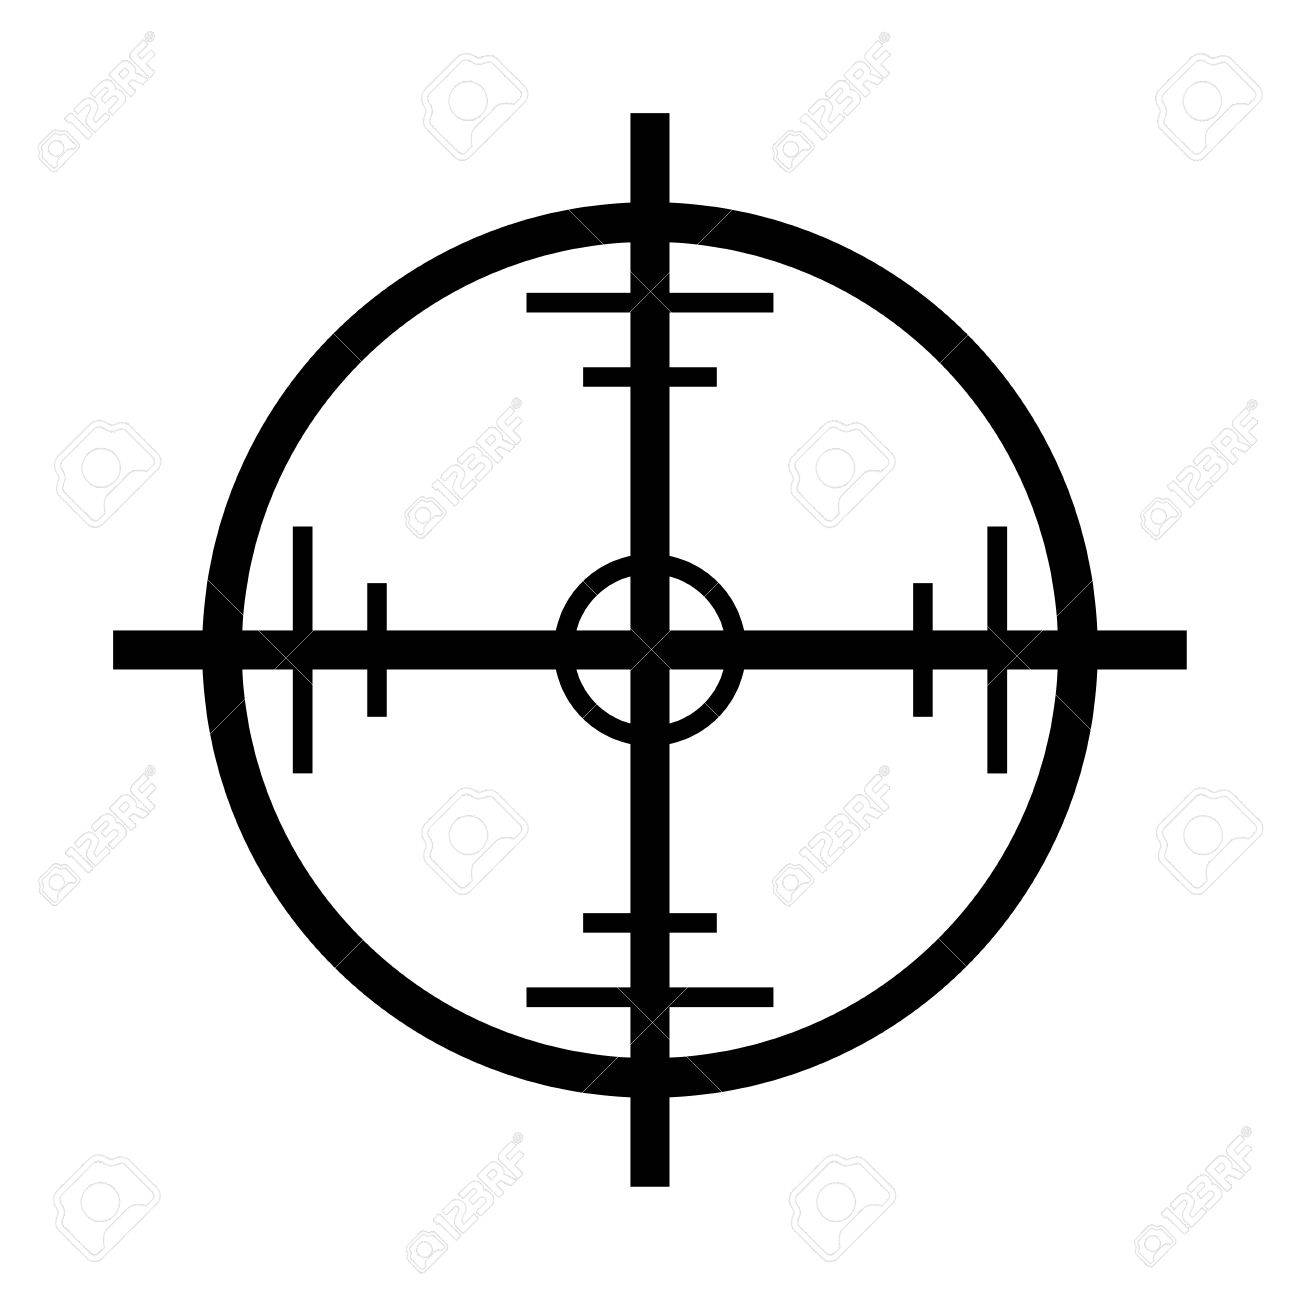 crosshair target vector symbol icon design beautiful illustration rh 123rf com